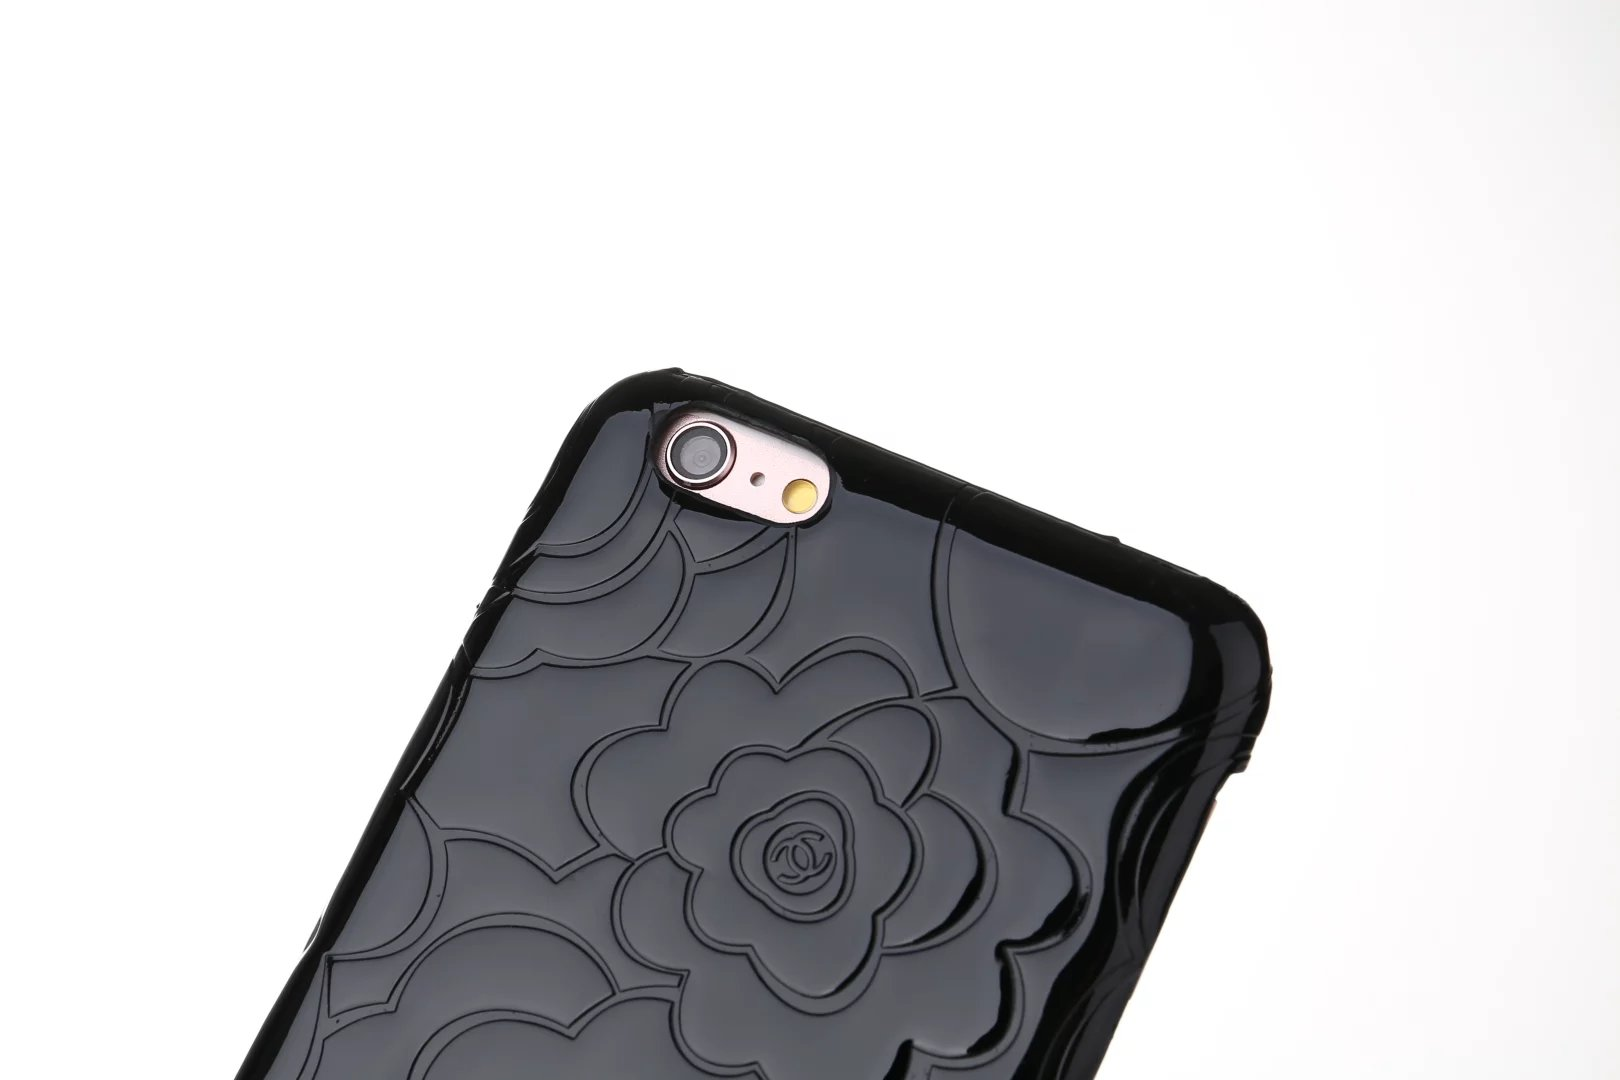 iphone hüllen günstig iphone hülle bedrucken Chanel iphone 8 hüllen handy foto cover silikon hülle handykappen iphone hülle laufen 8lber hüllen machen handyhülle htc one 8lbst gestalten